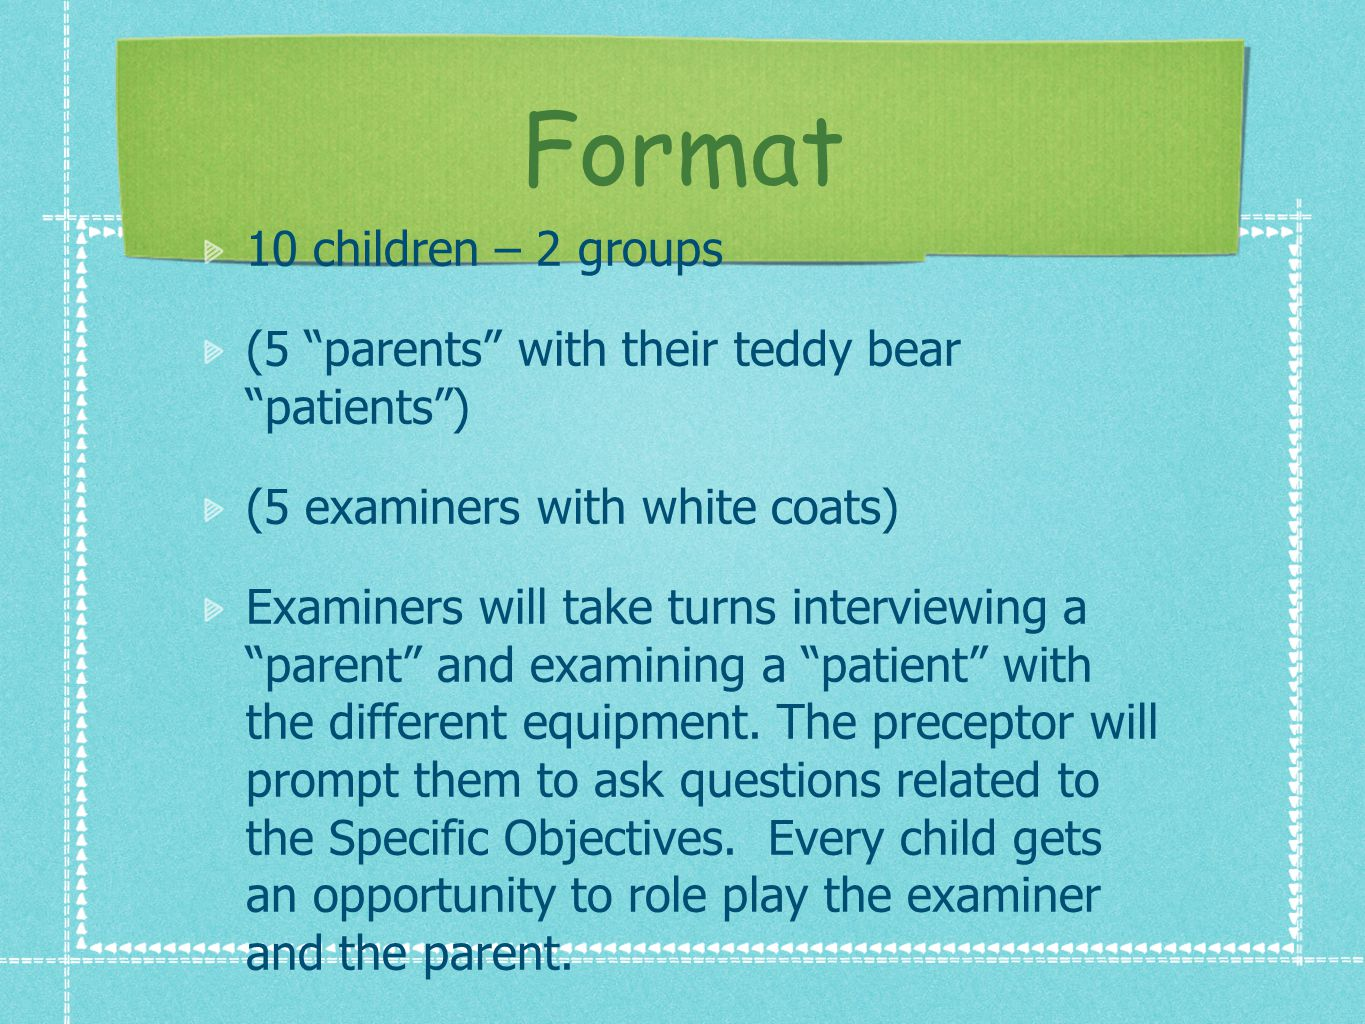 Format 10 children – 2 groups (5 parents with their teddy bear patients) (5 examiners with white coats) Examiners will take turns interviewing a parent and examining a patient with the different equipment.